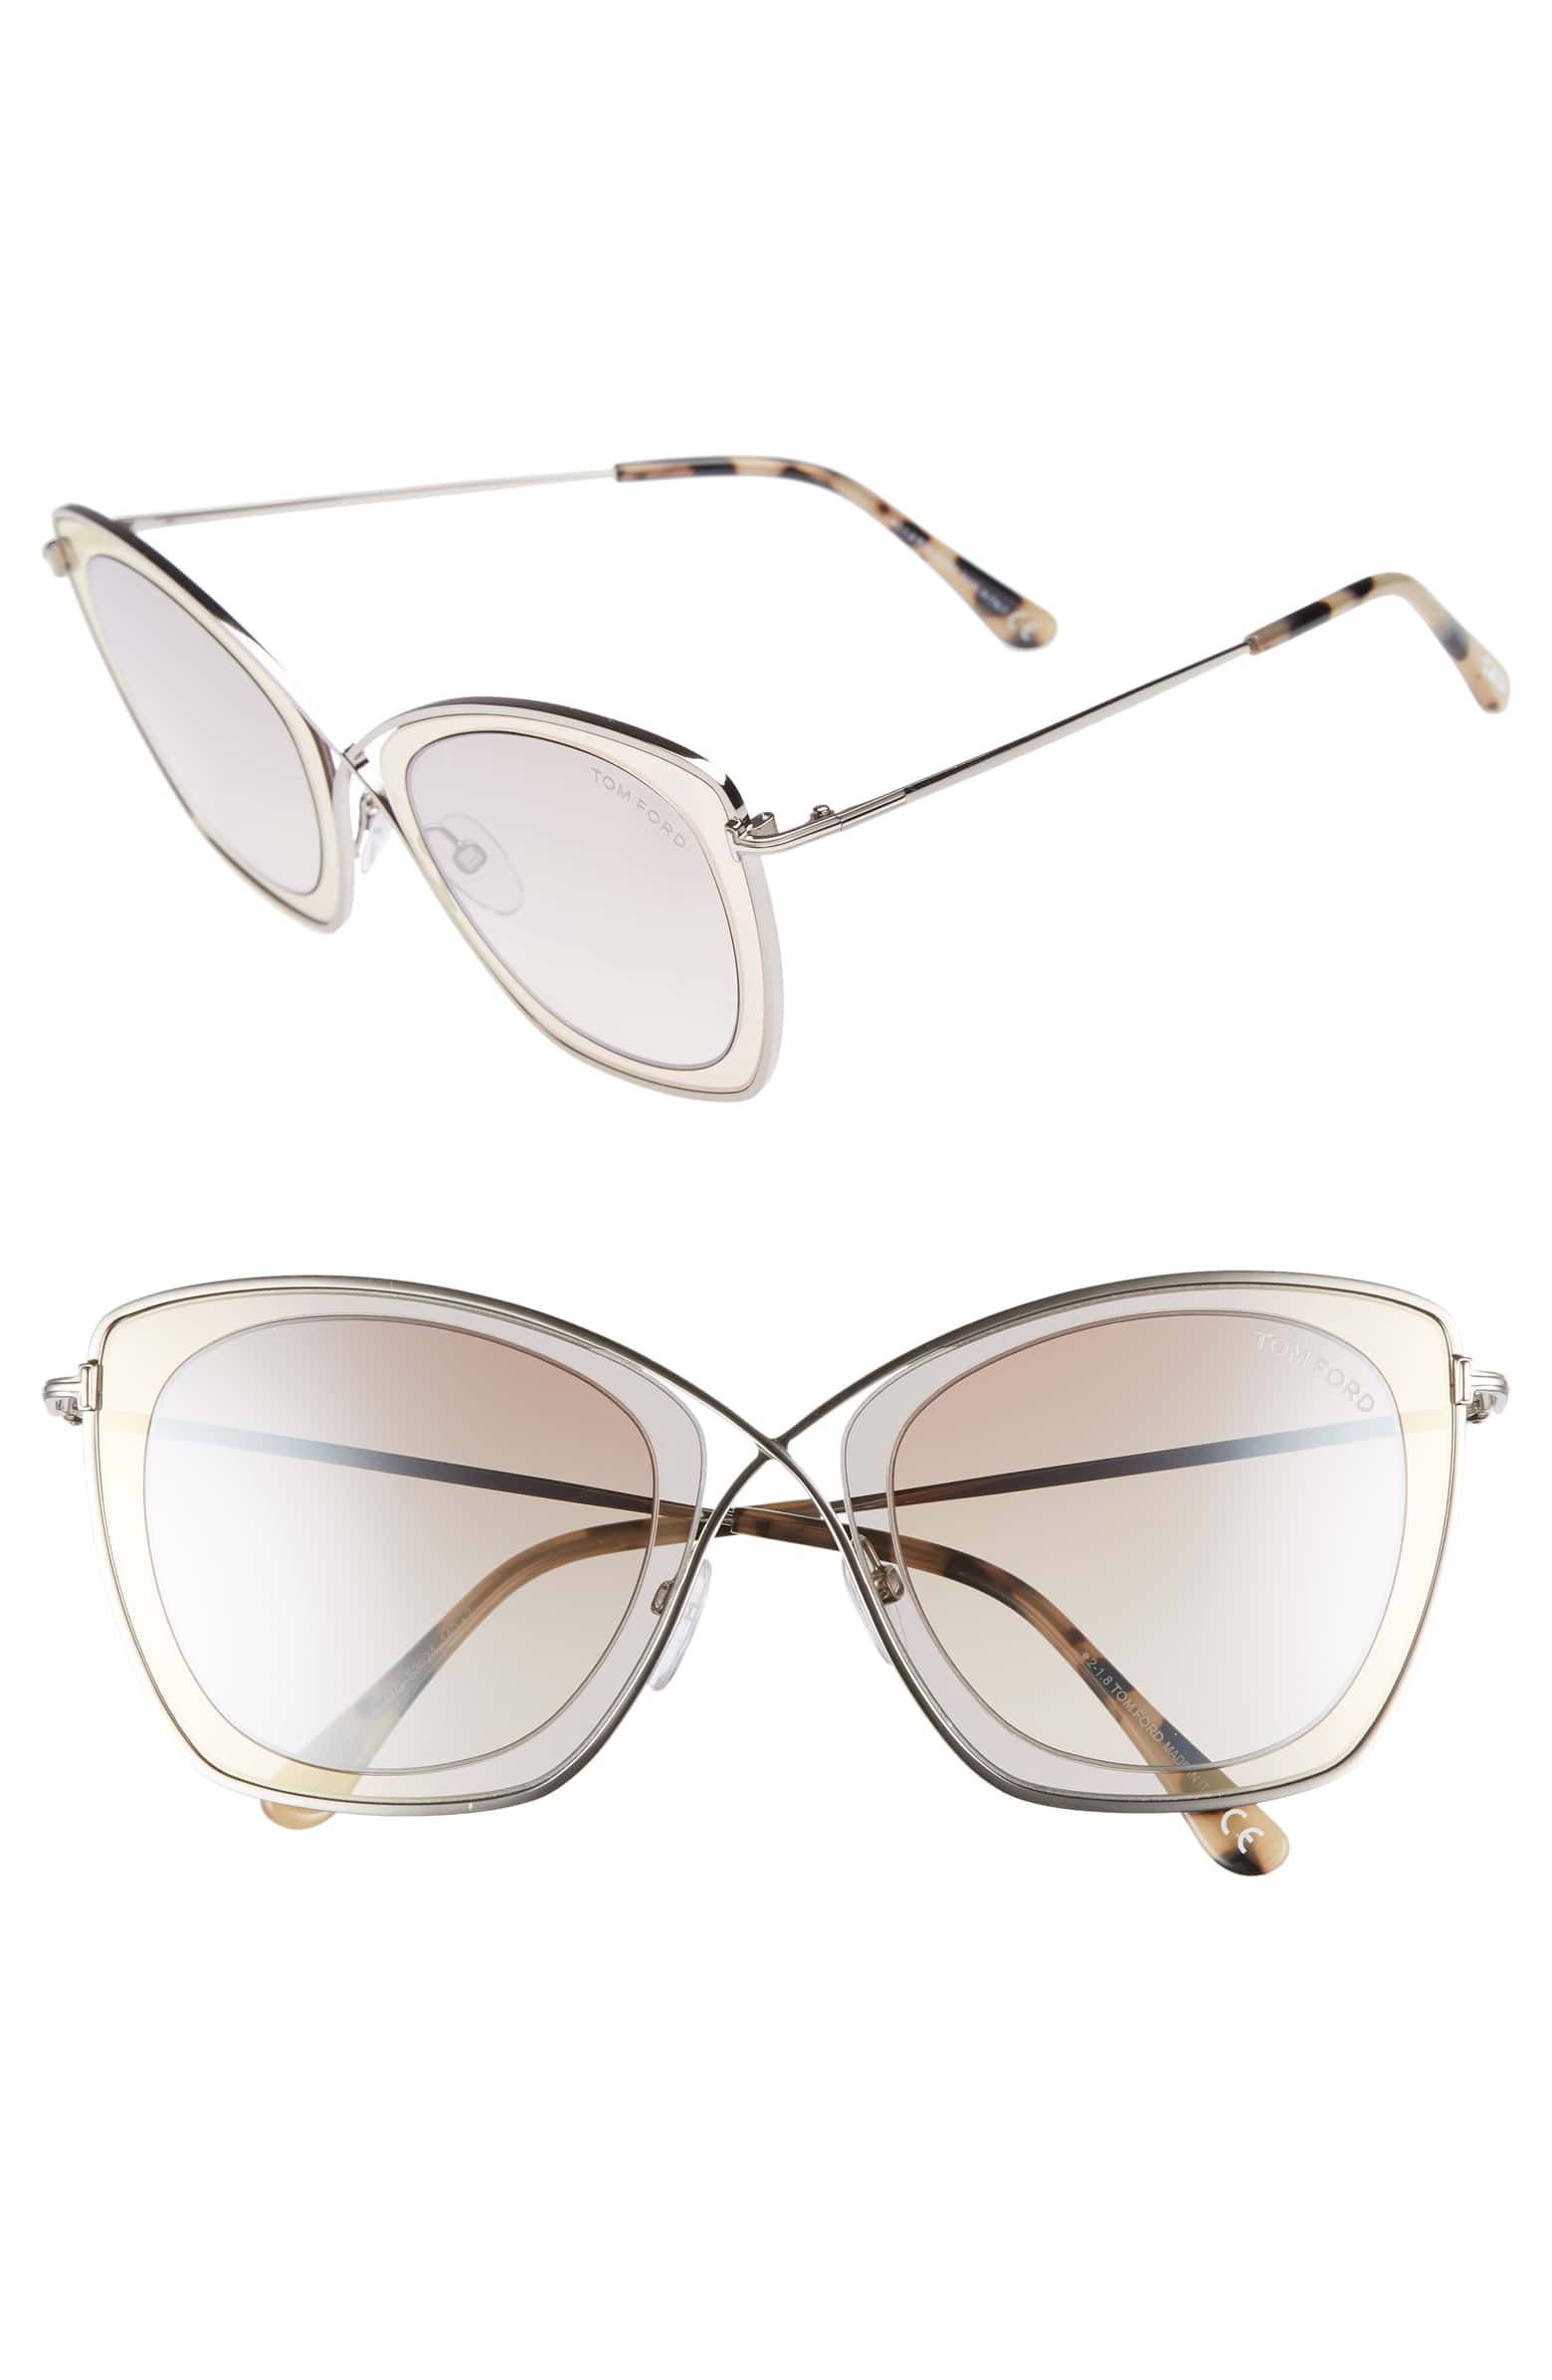 052c7faa41 India 53mm Butterfly Sunglasses